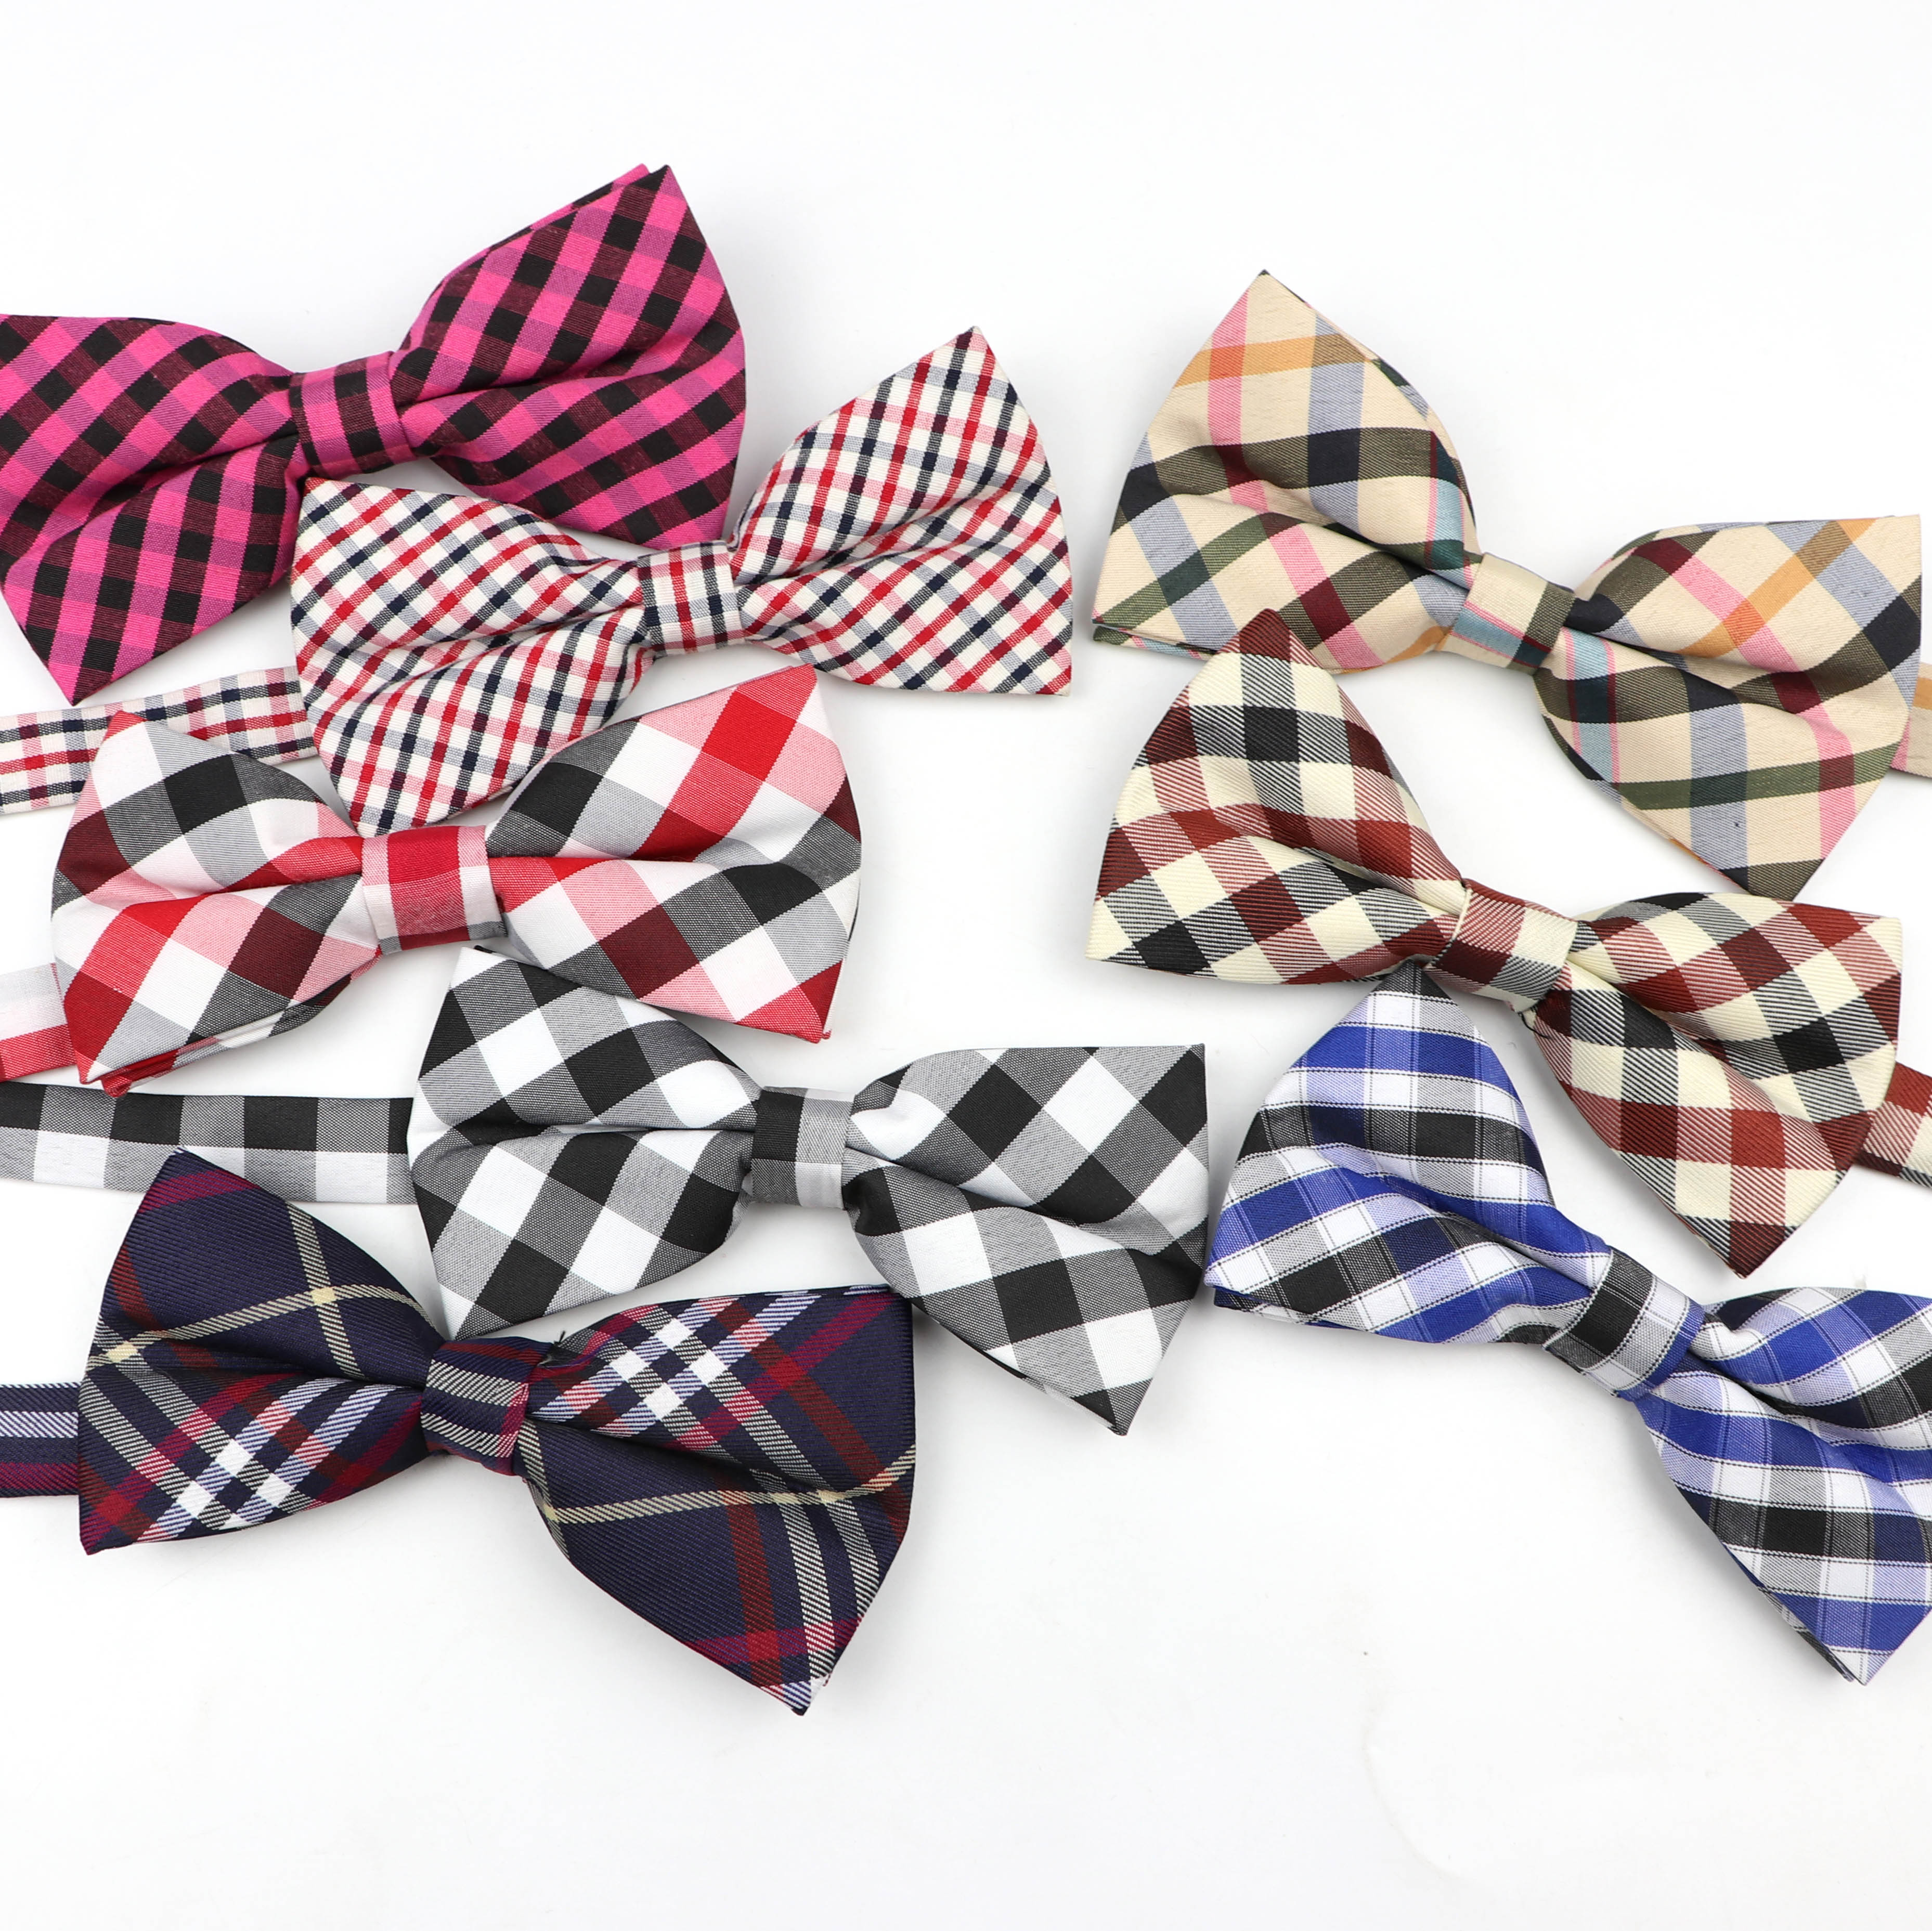 Polyester Men's Bow Tie Plaid Striped Flexible Bowtie Smooth Necktie Soft Matte Butterfly Decorative Pattern Color Ties